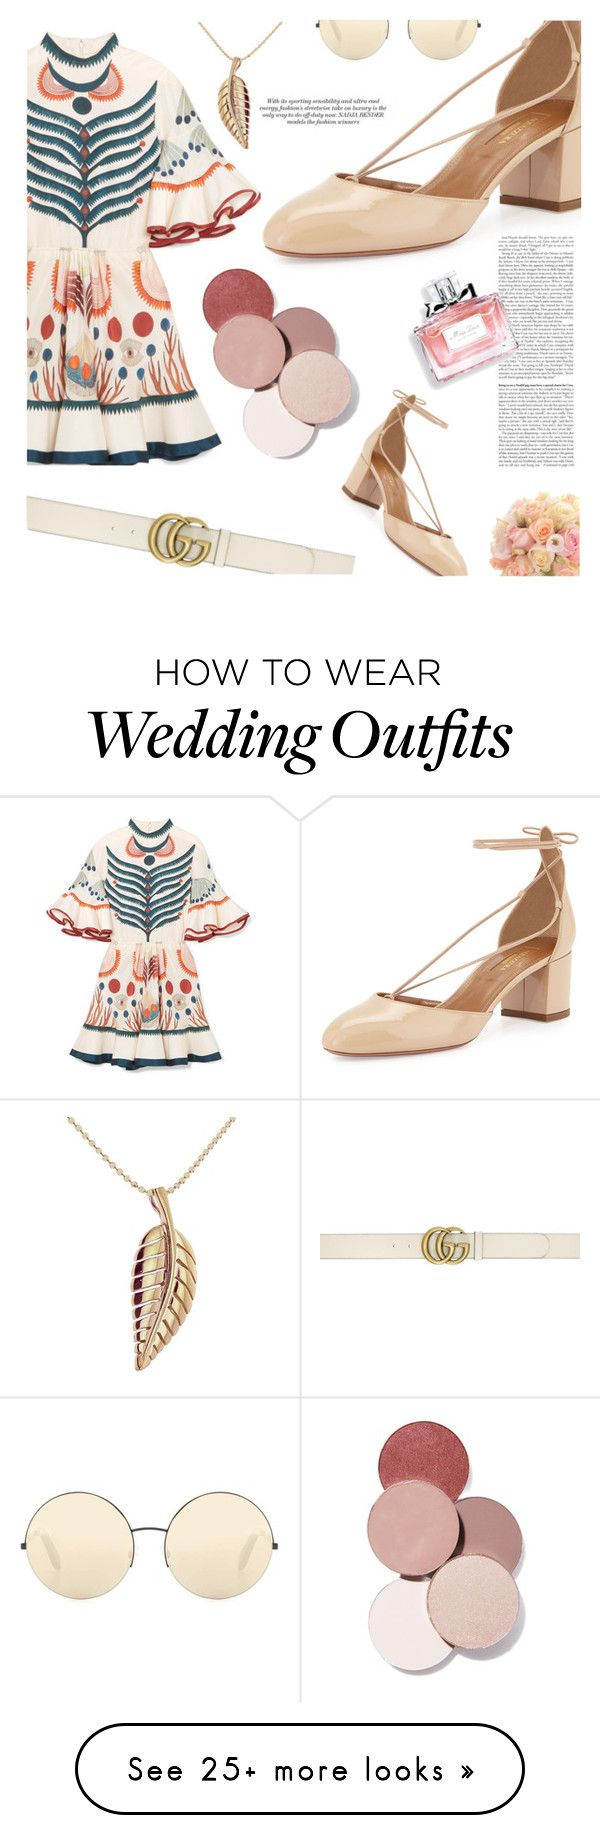 """Wedding Guest"" by samweedon on Polyvore featuring Chloé, Aquazzura, Gucci, Victoria Beckham, Jennifer Meyer Jewelry, LunatiCK Cosmetic Labs and Christian Dior"